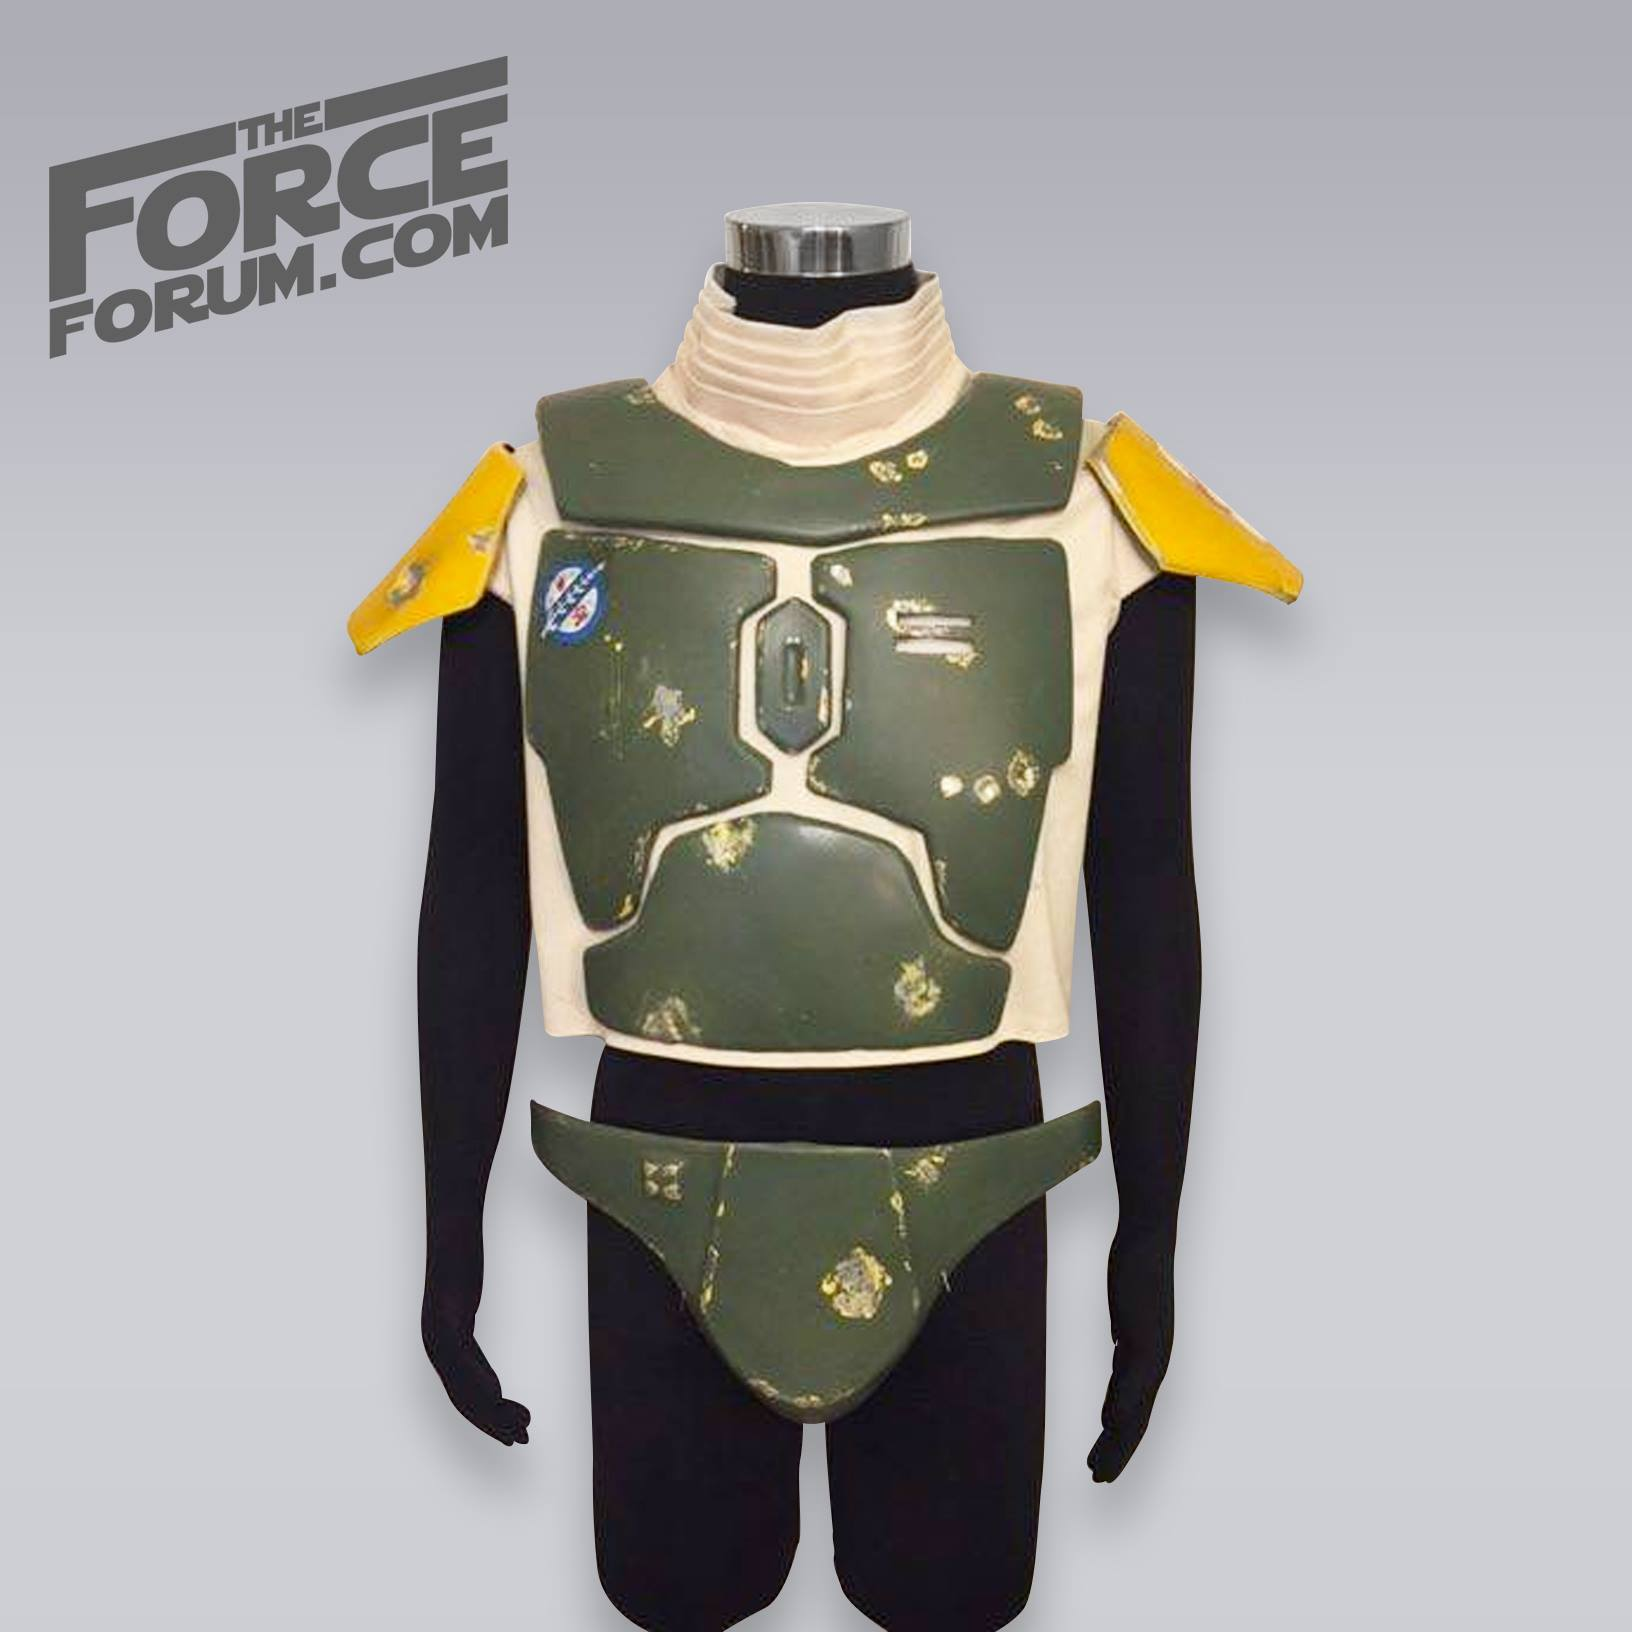 Green Bounty Hunter Armor Set - The Force Forum